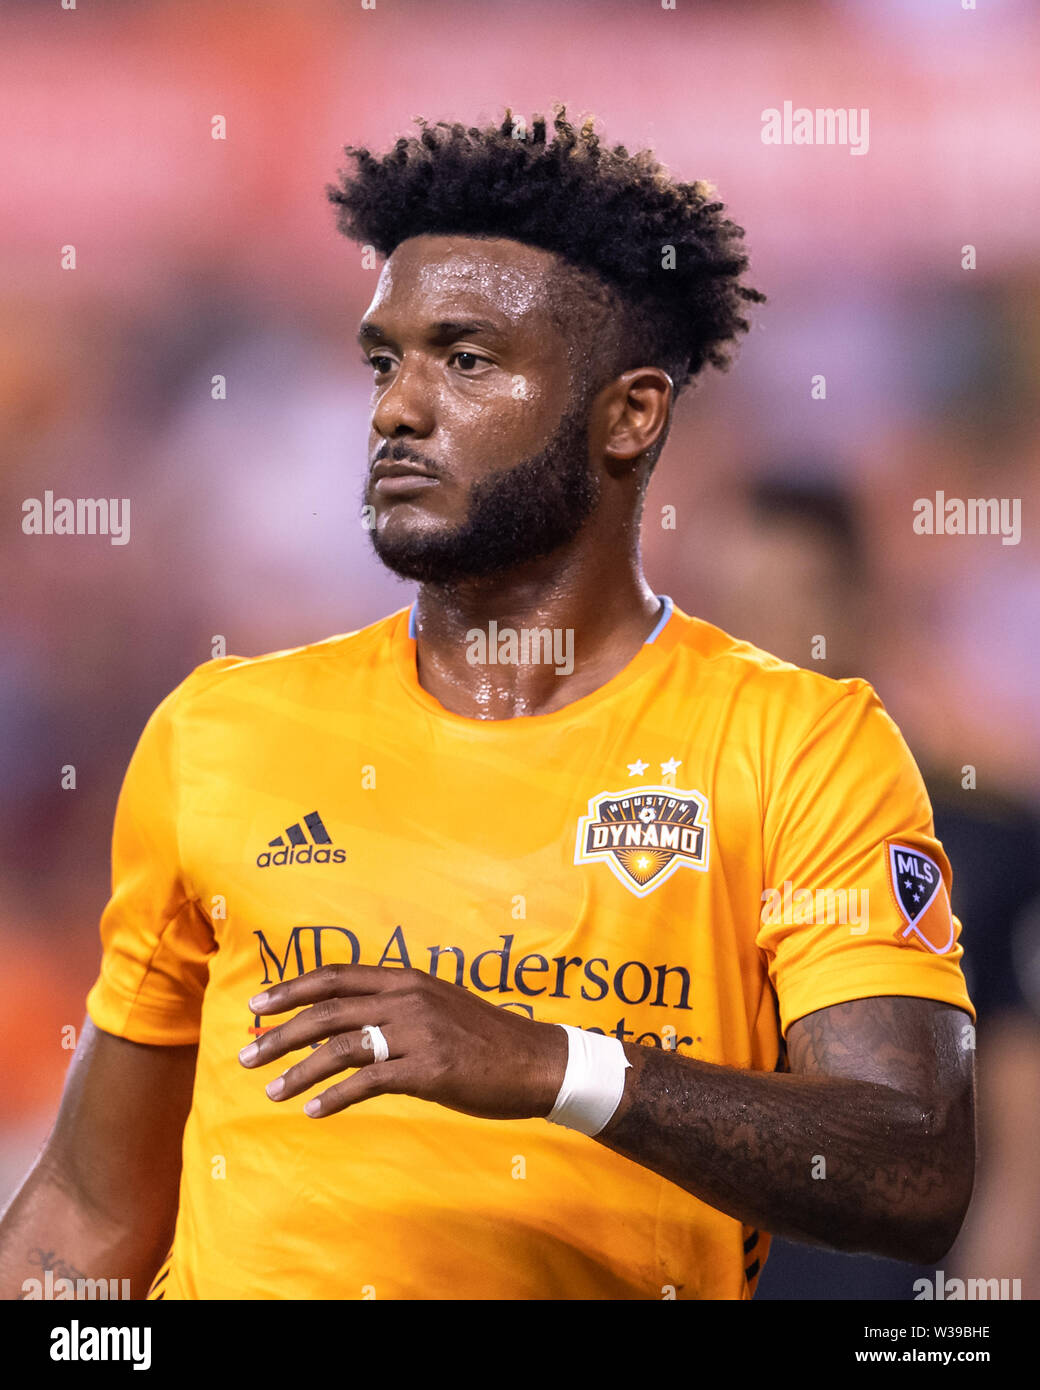 Houston, Texas, USA. 12th July, 2019. Houston Dynamo forward Michael Salazar (19) during a match between Los Angeles FC and Houston Dynamo at BBVA Stadium in Houston, Texas. The final LAFC wins 3-1. Maria Lysaker/CSM/Alamy Live News - Stock Image